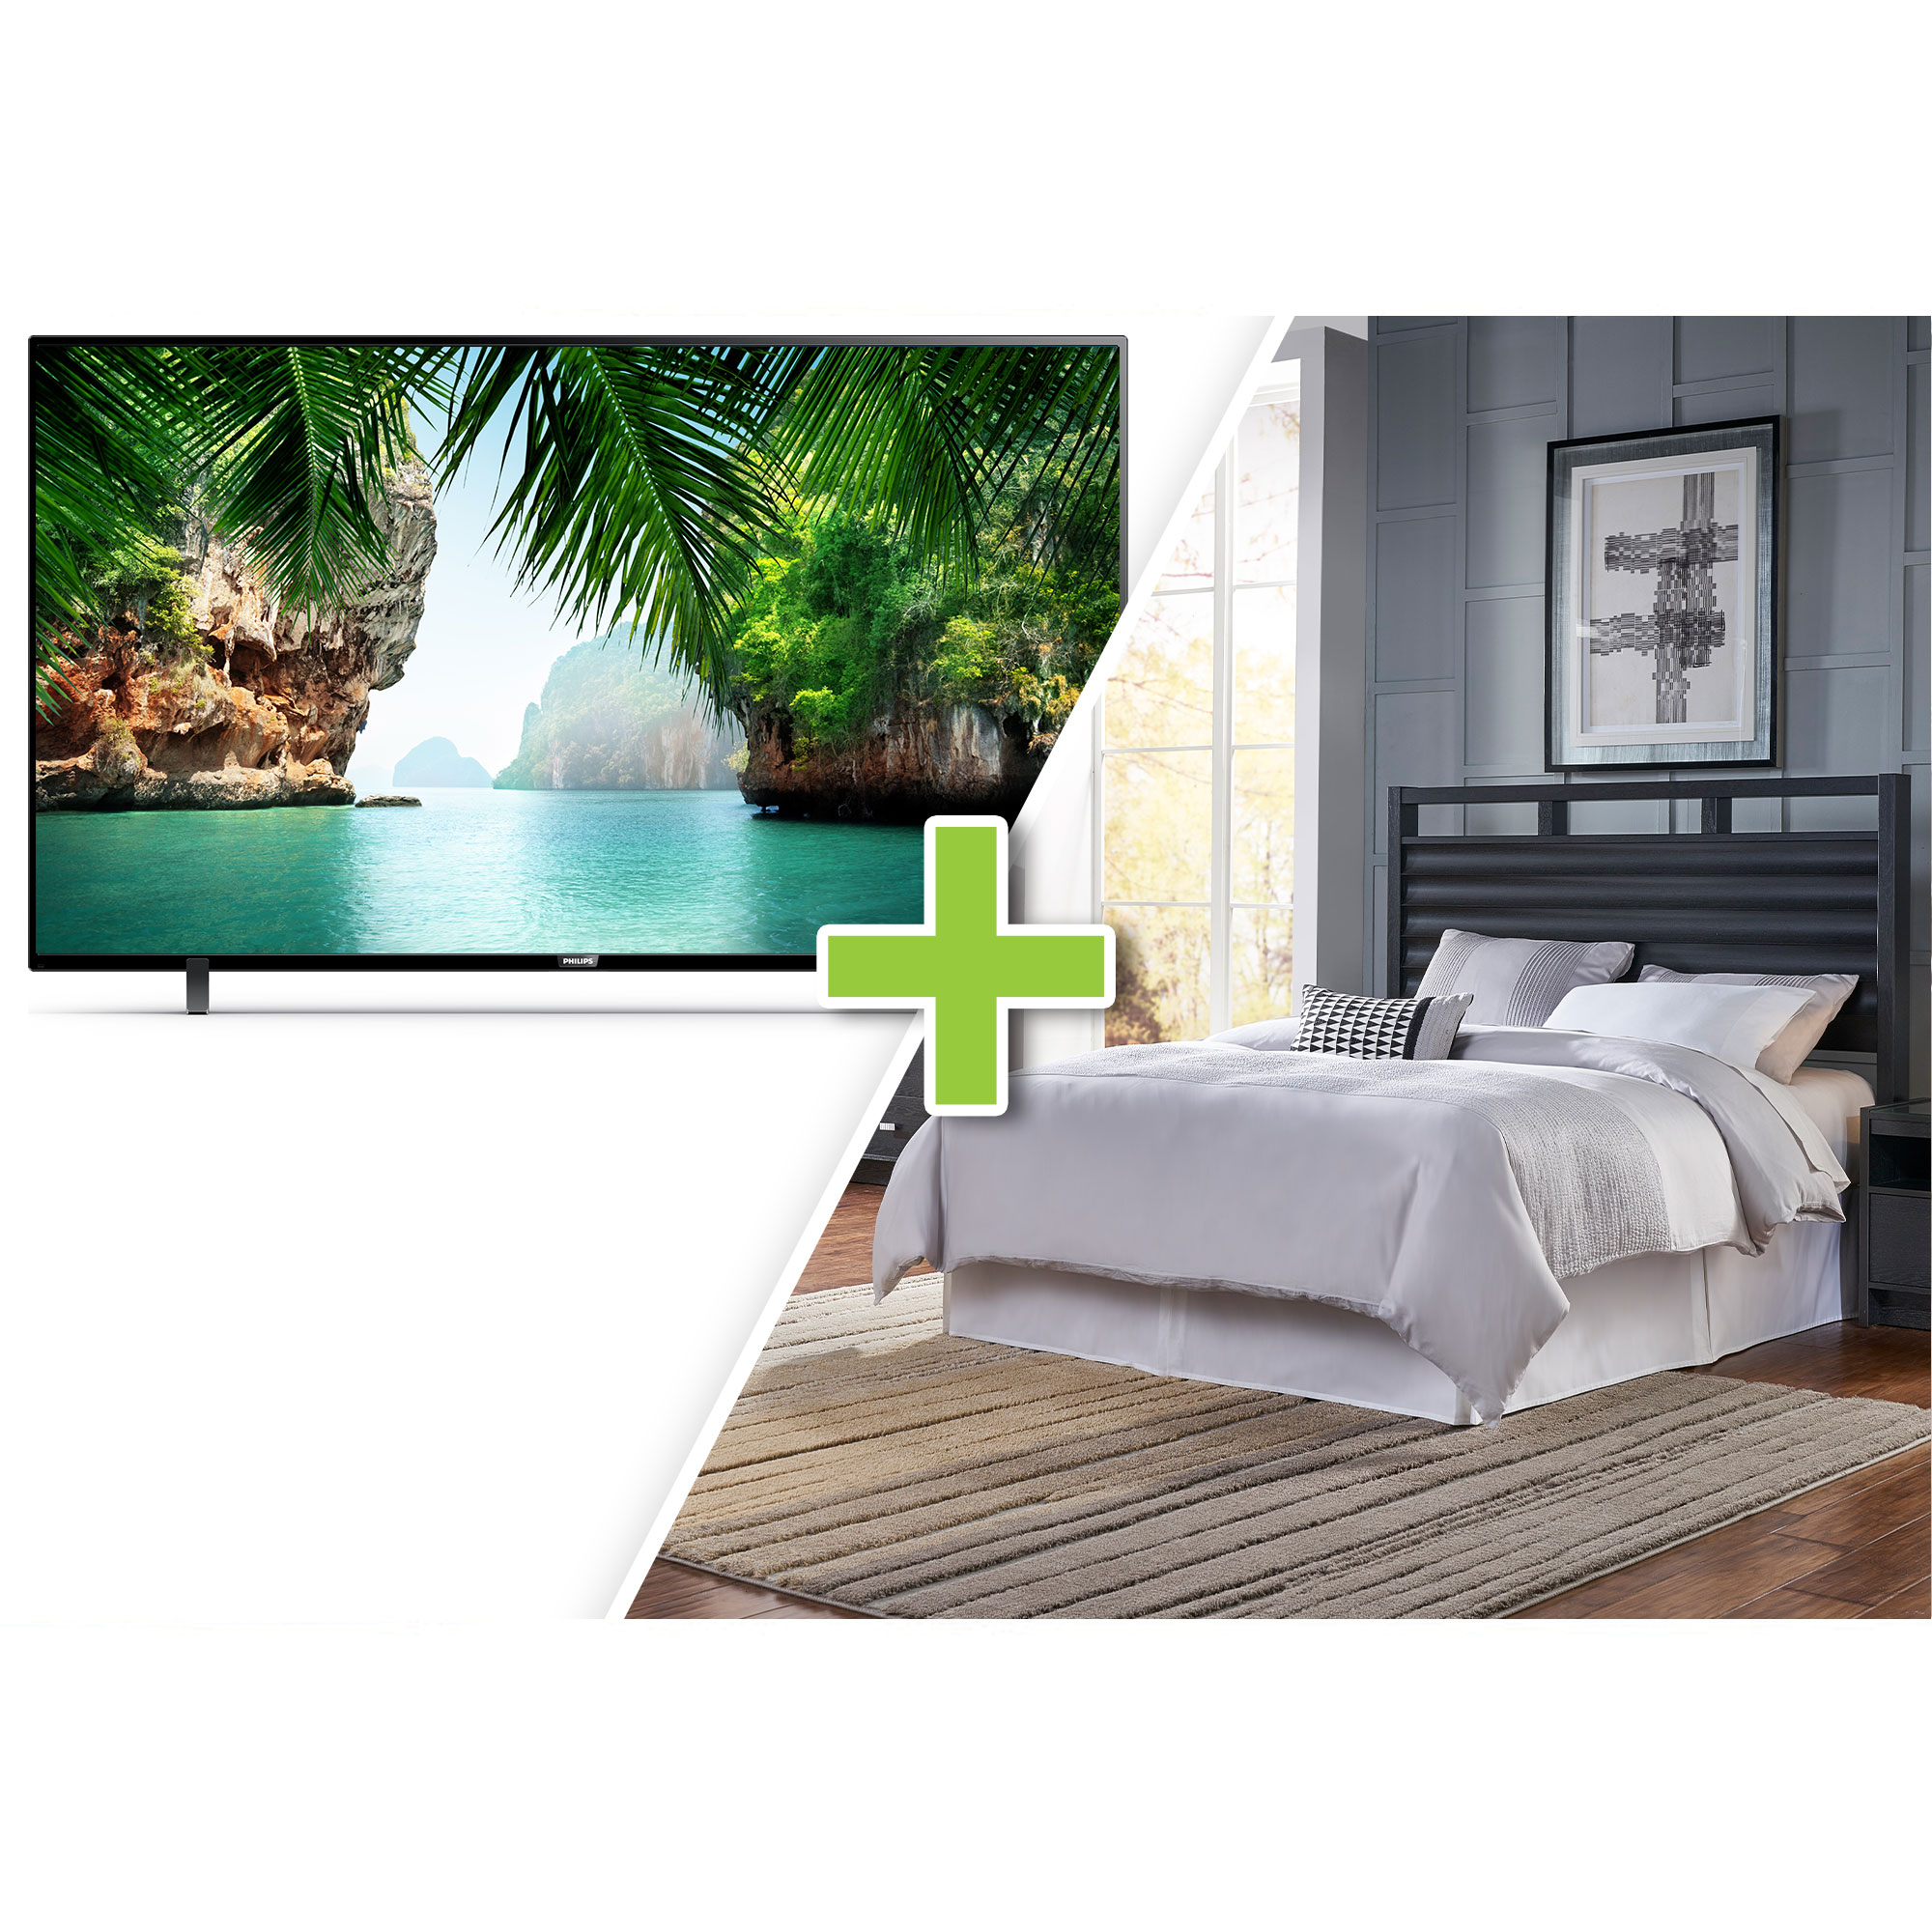 Rent To Own Philips 50 Class 4k Uhd Smart Tv And 5 Piece Soho Queen Bedroom Collection At Aaron S Today